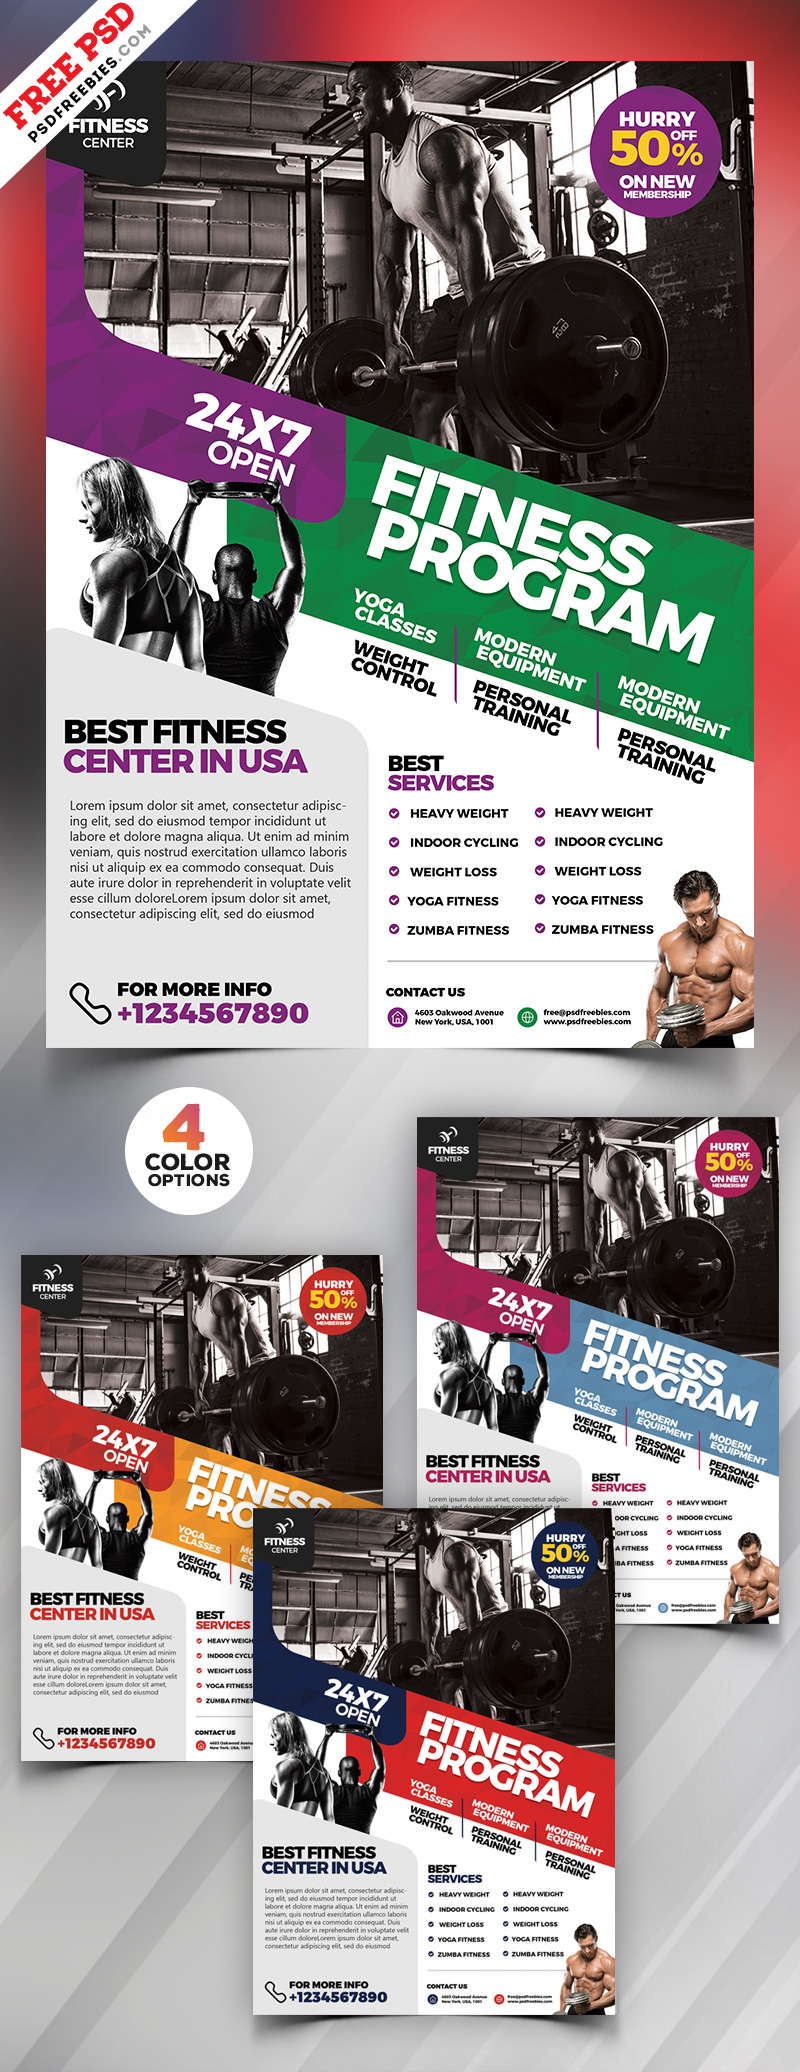 gym fitness flyer design psd bundle psdfreebies com